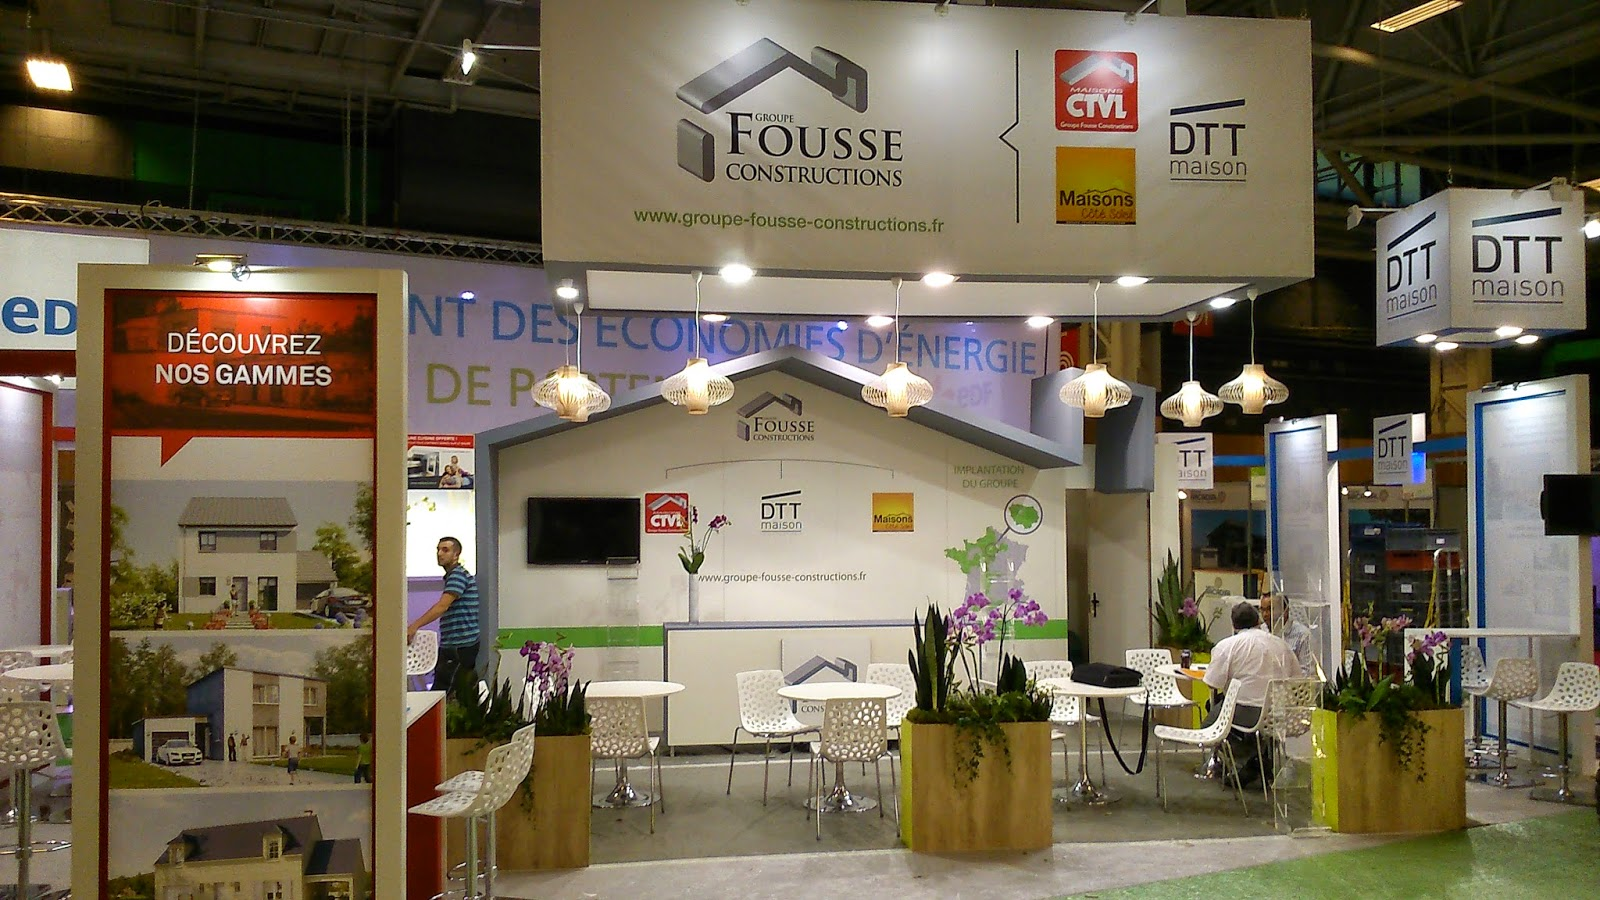 Dtt Maison. Simple Dtt Maison With Dtt Maison. Affordable ...